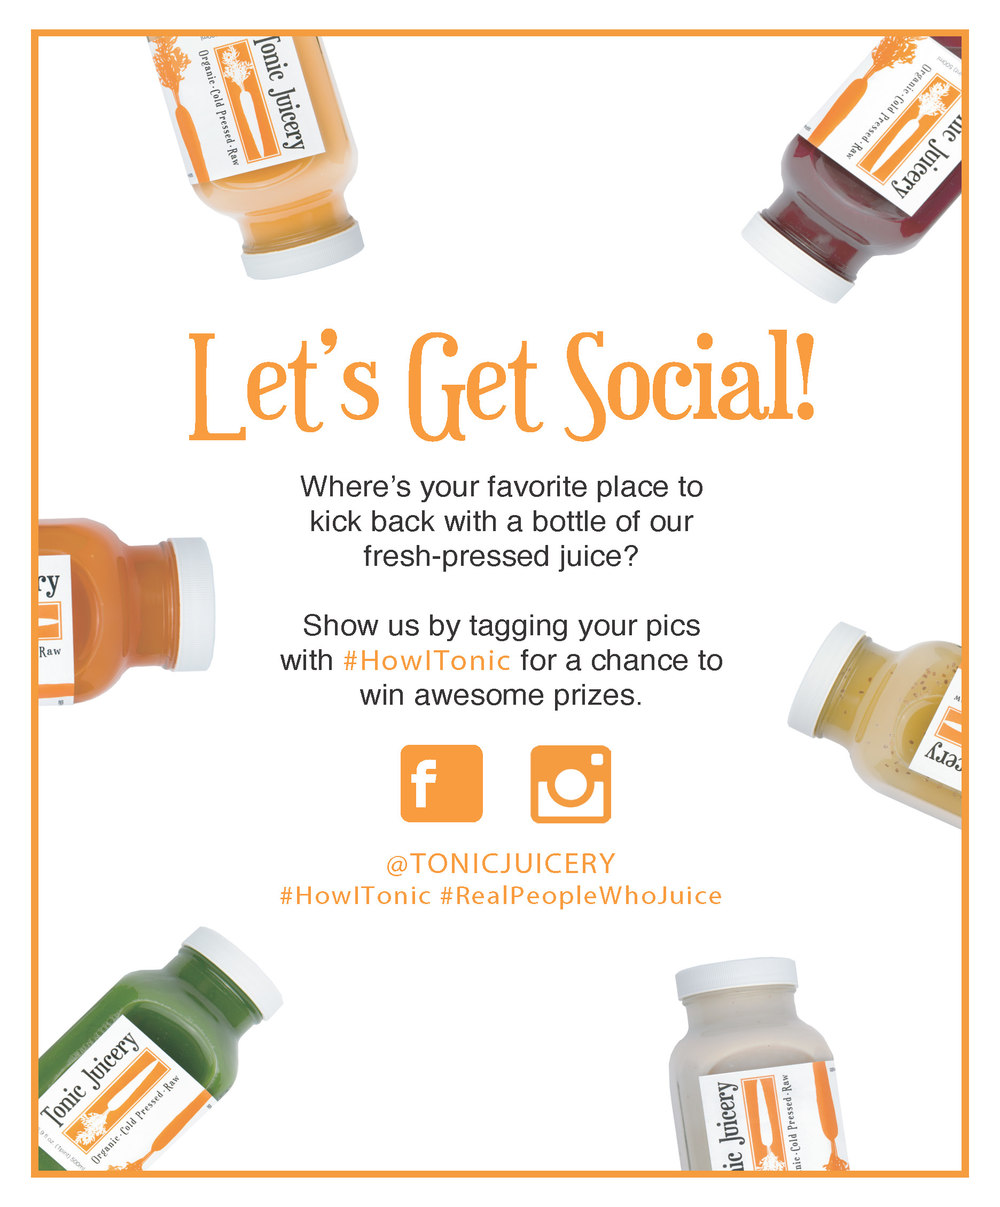 tonic-juicery-social-media